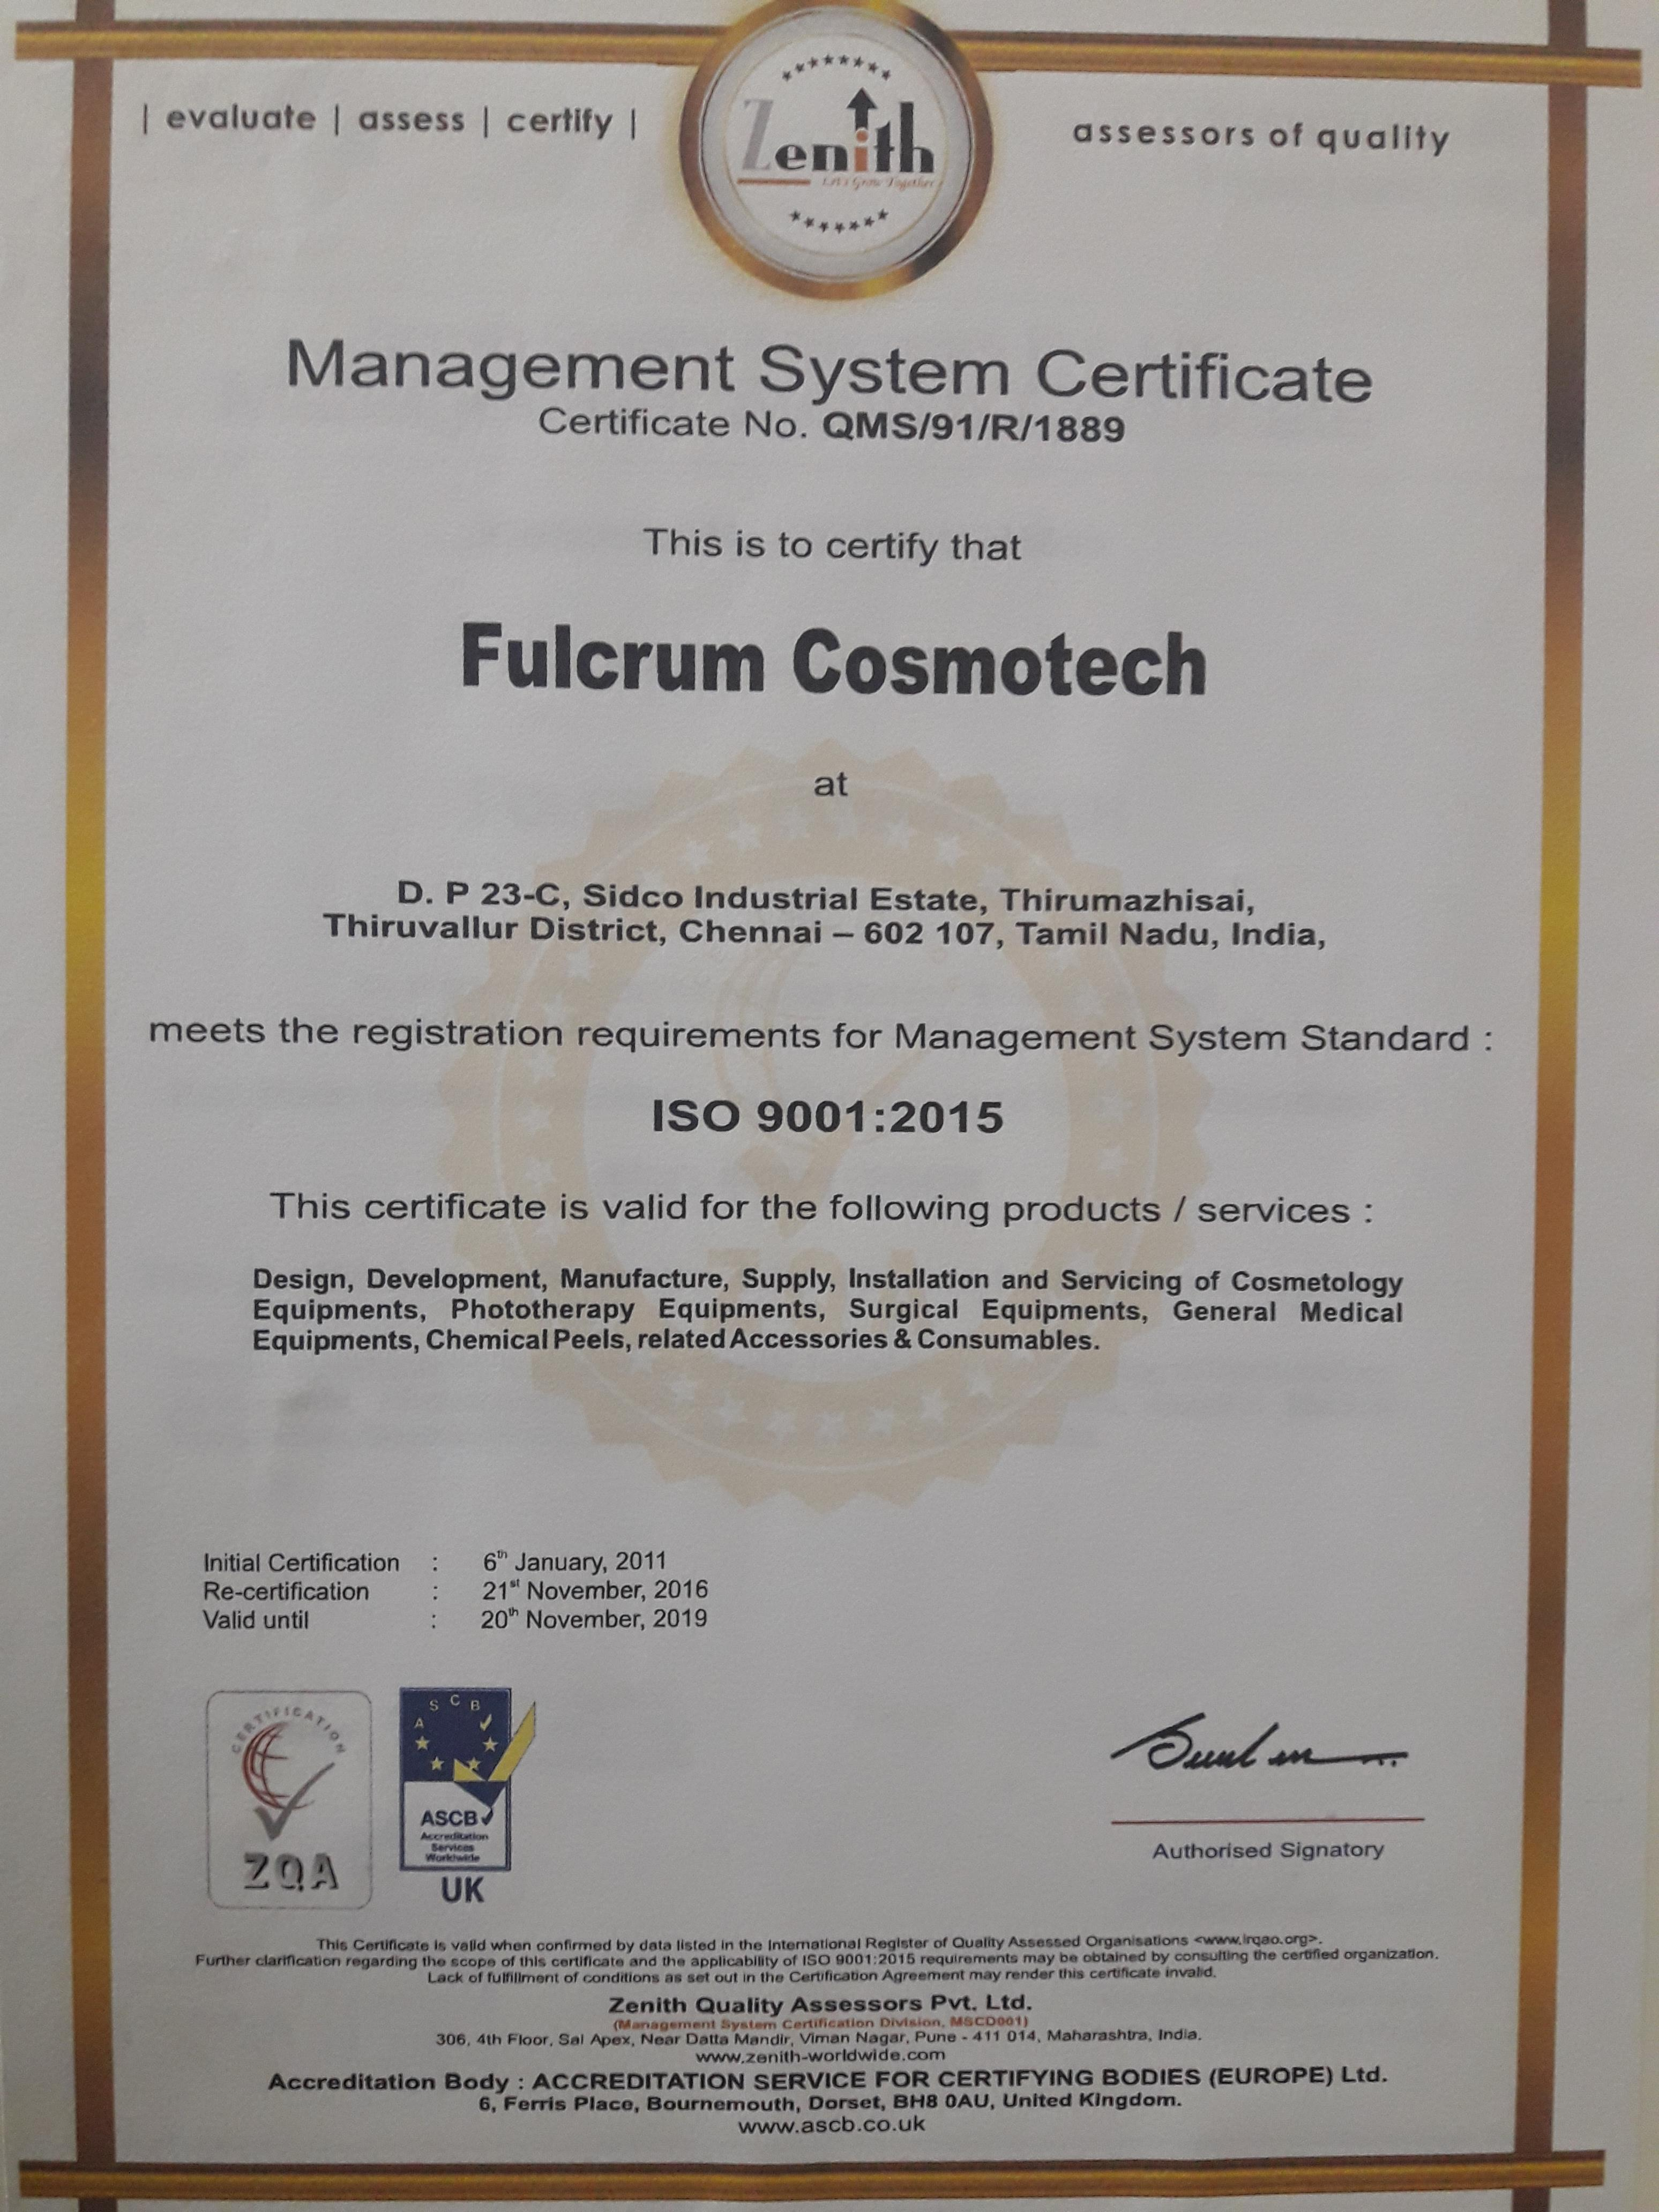 Fulcrum Cosmotech